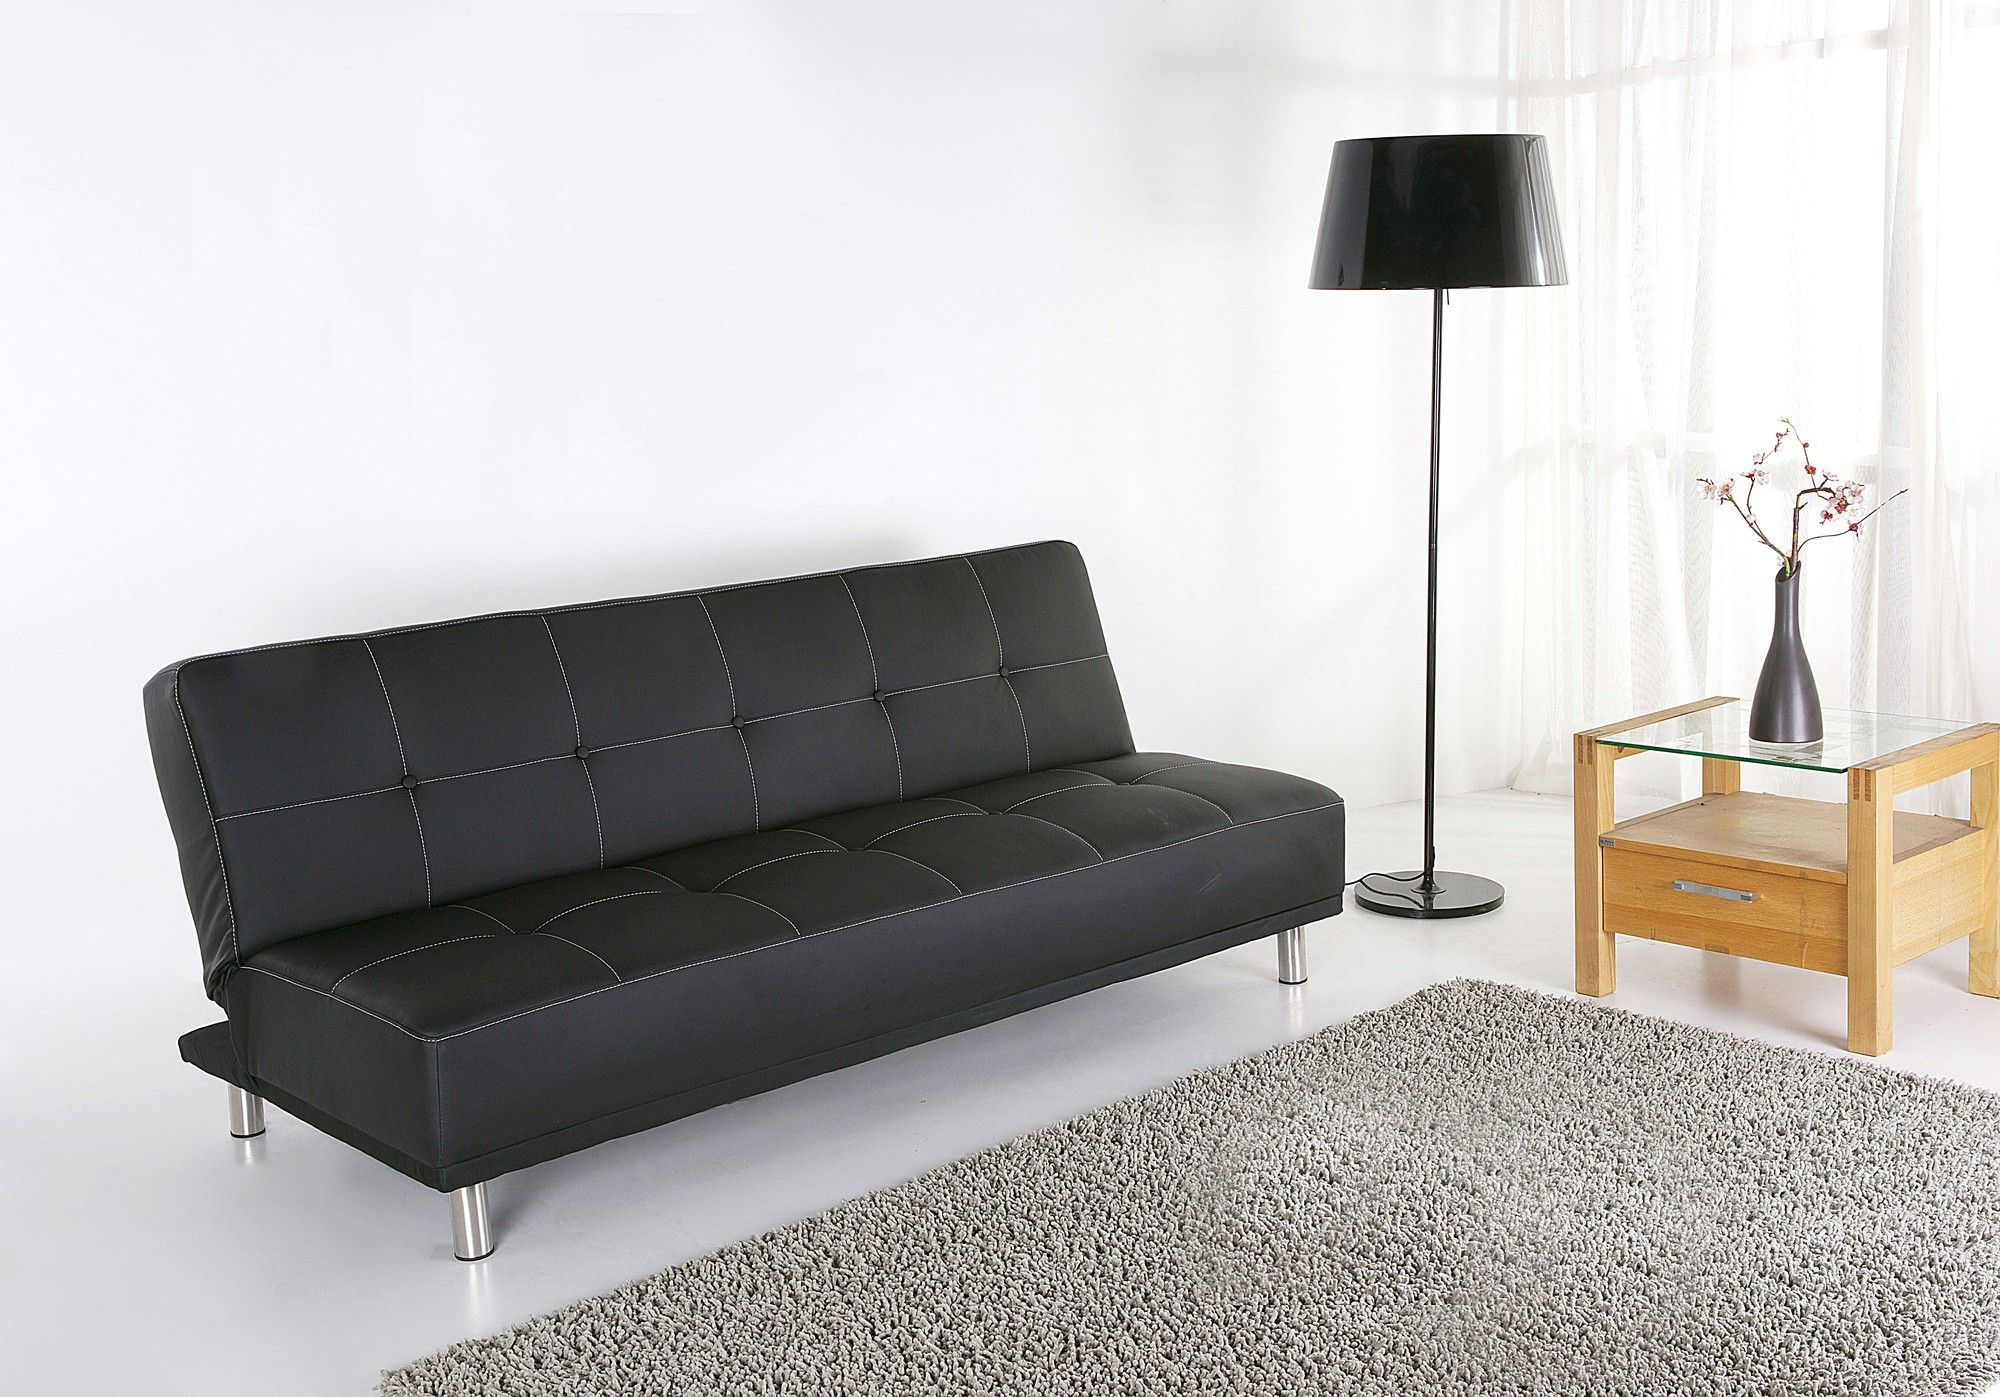 Upholstered In Faux Leather Foam And Fibre Filling Fixed Cushion Sofa Bed Dimensions 38cm H X 109cm W 180cm D Sprung 78cm